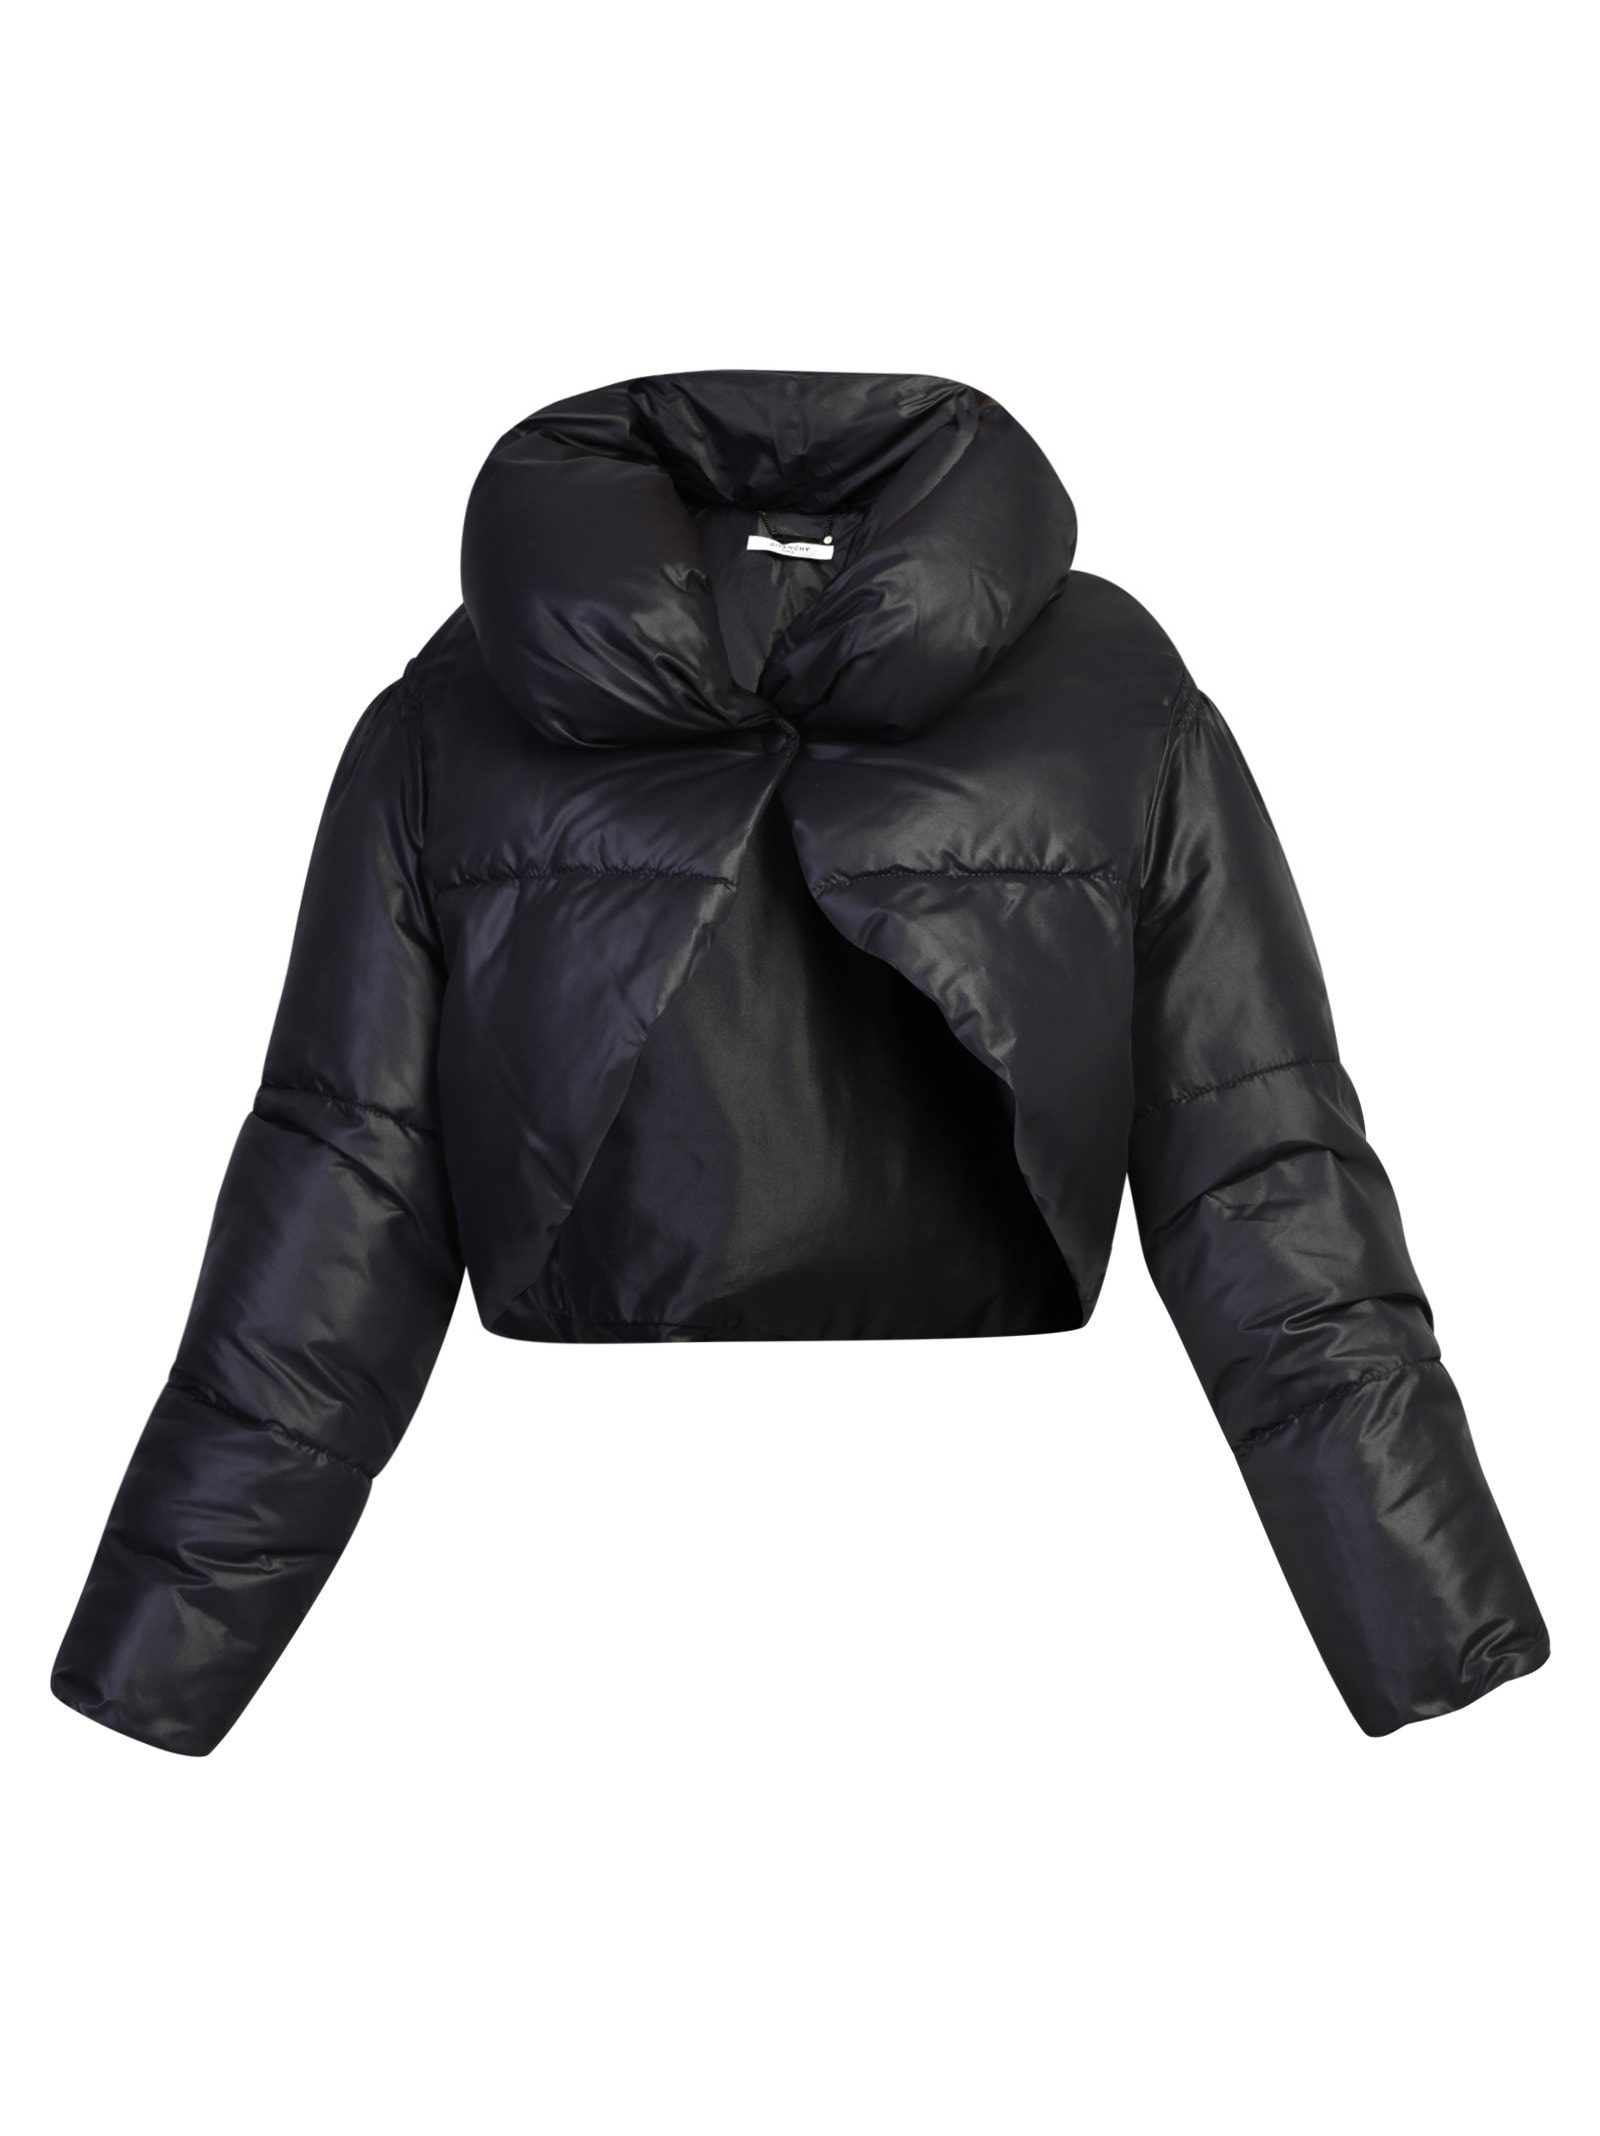 Givenchy Cropped Padded Jacket